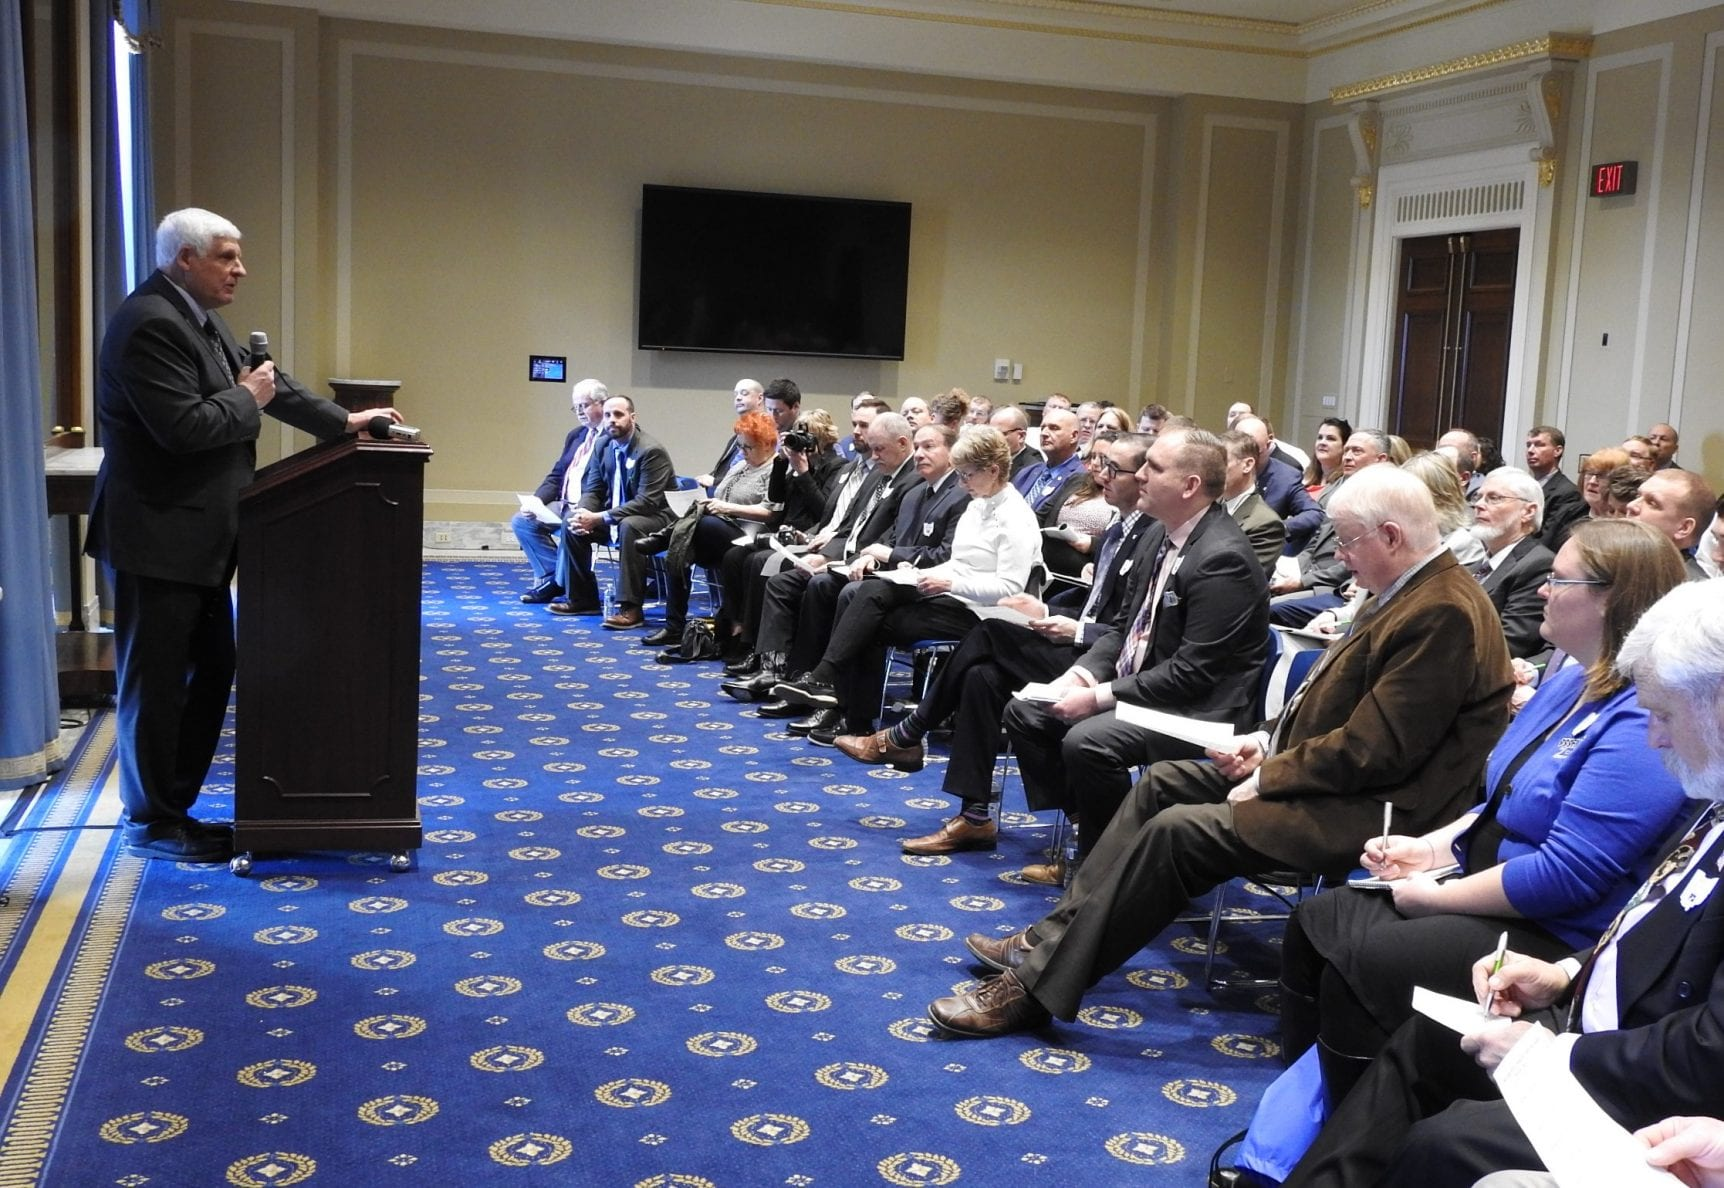 Congressman Bob Gibbs welcomes county presidents to his annual Farm Forum with congressional leaders in D.C.